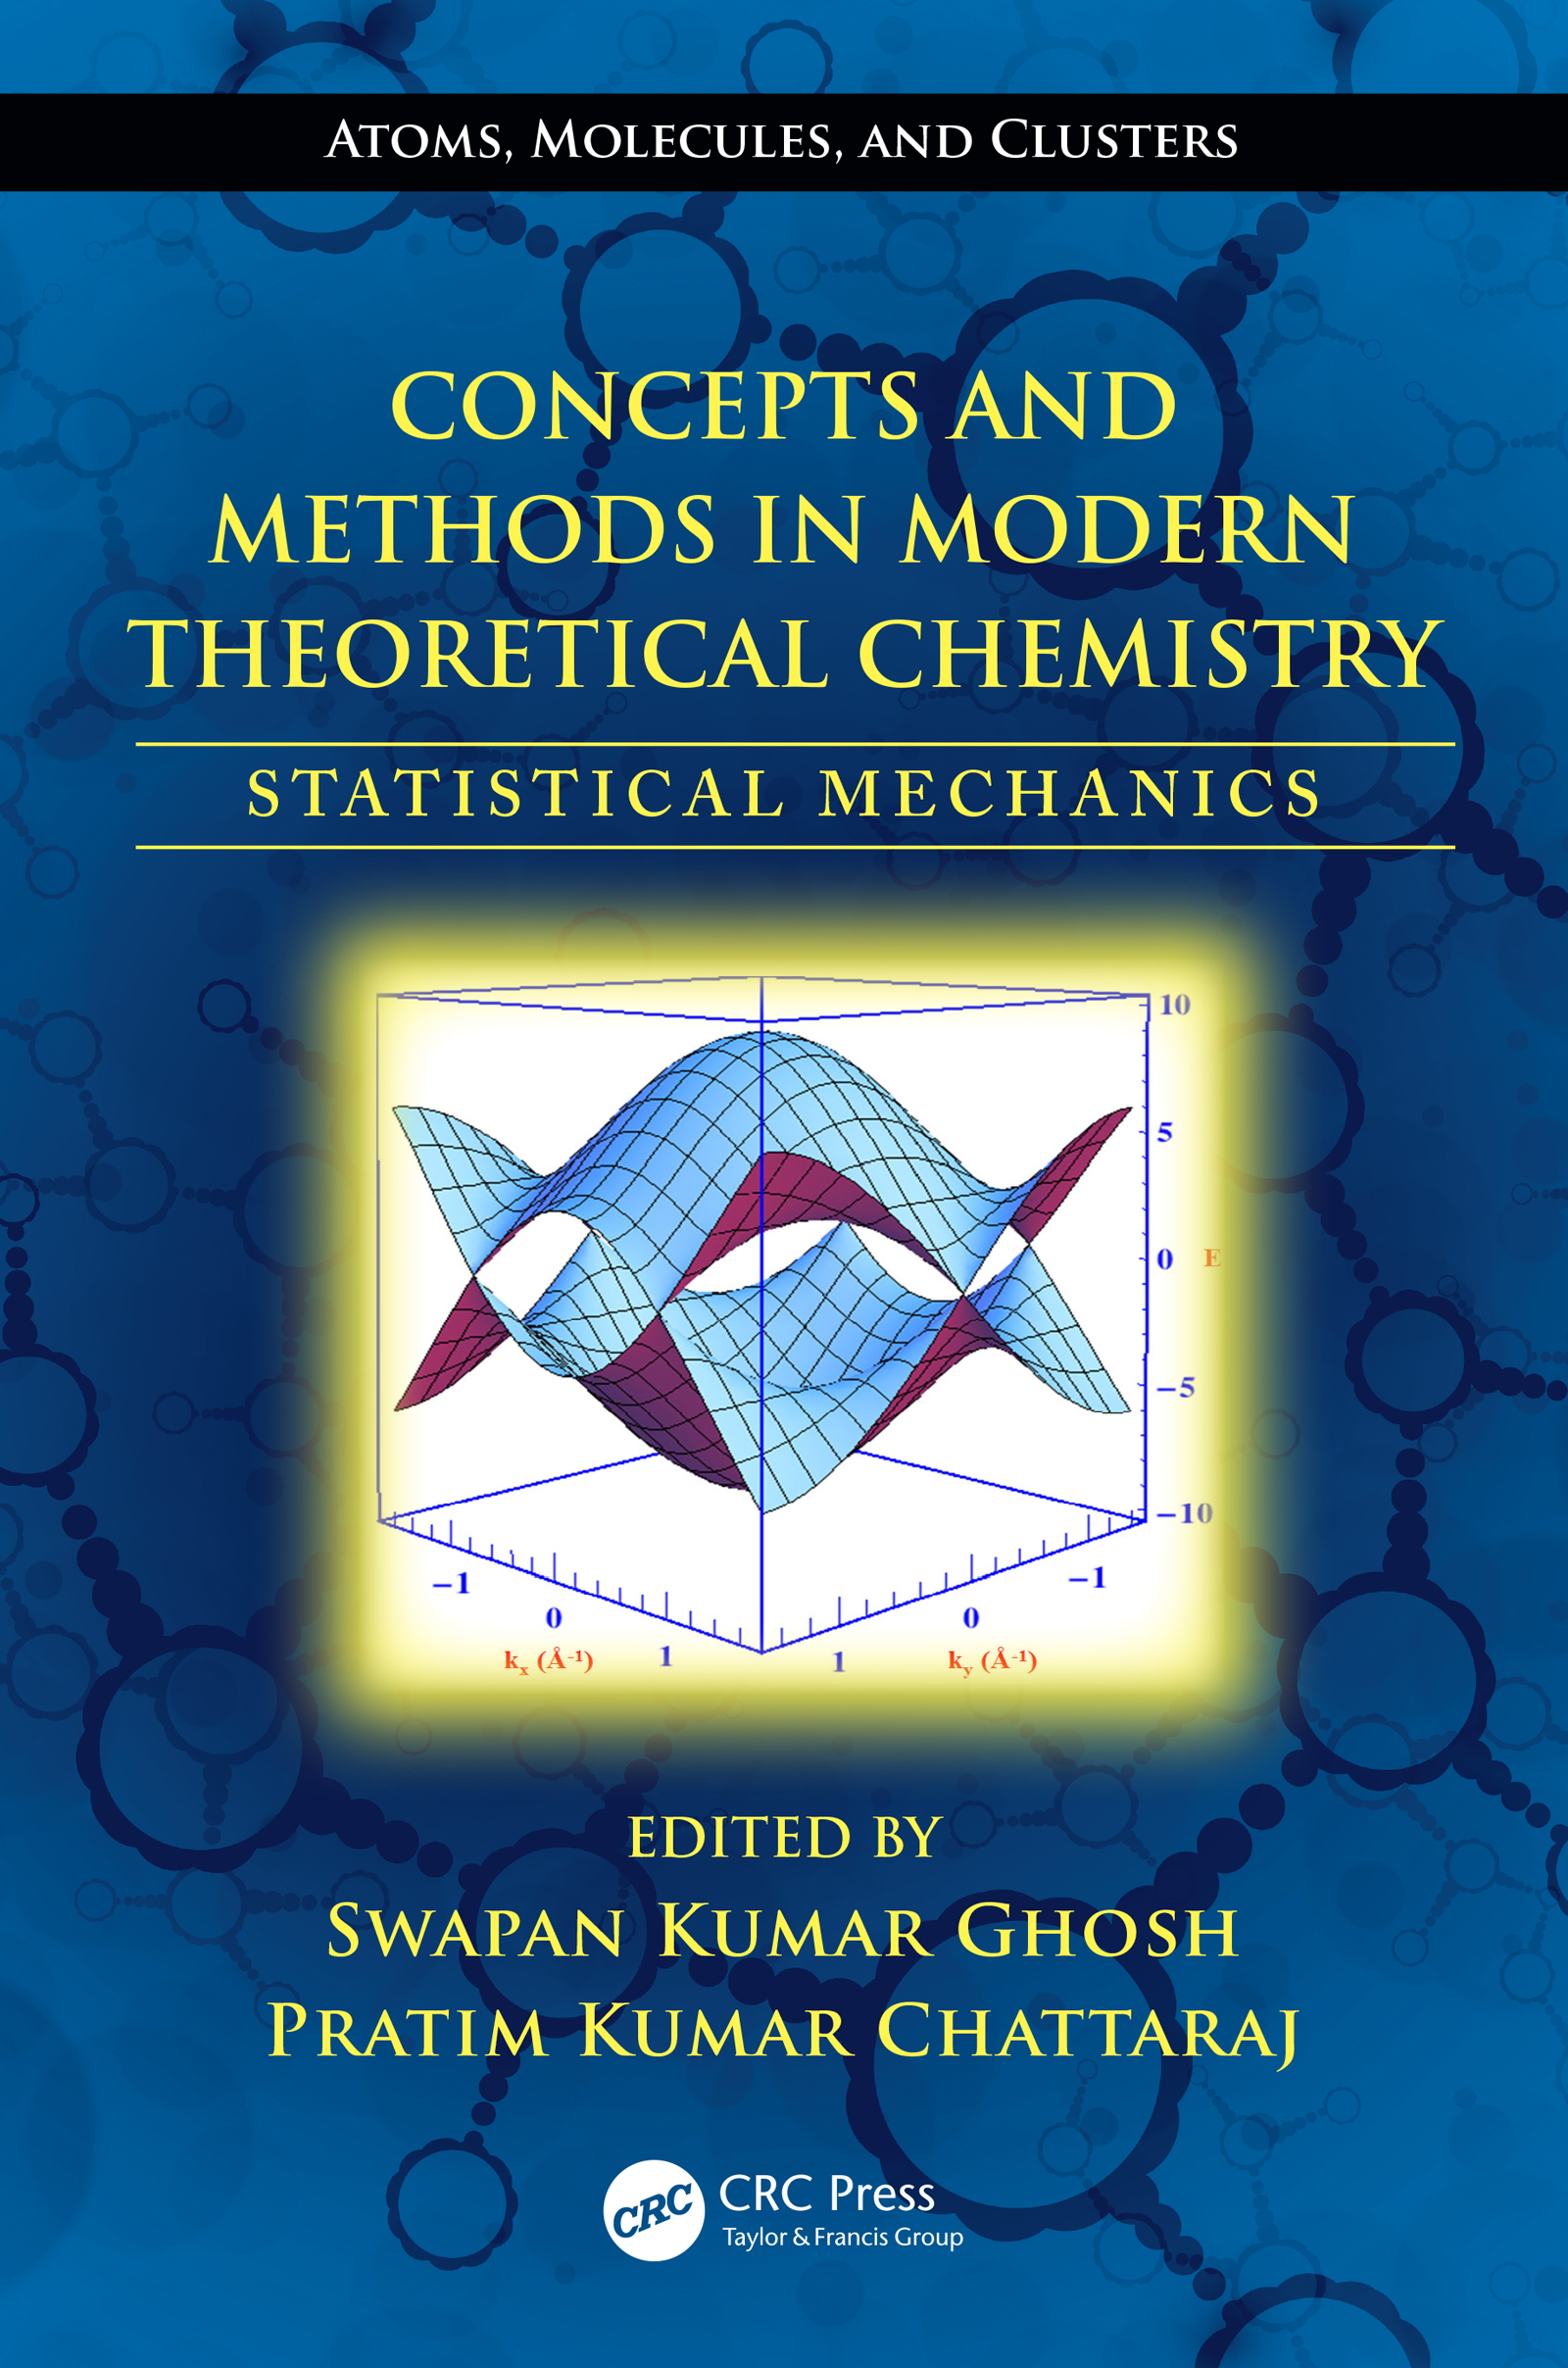 Time-Dependent Density Functional Theoretical Methods for Nonperturbative Treatment of Multiphoton Processes of Many- Electron Molecular Systems in Intense Laser Fields